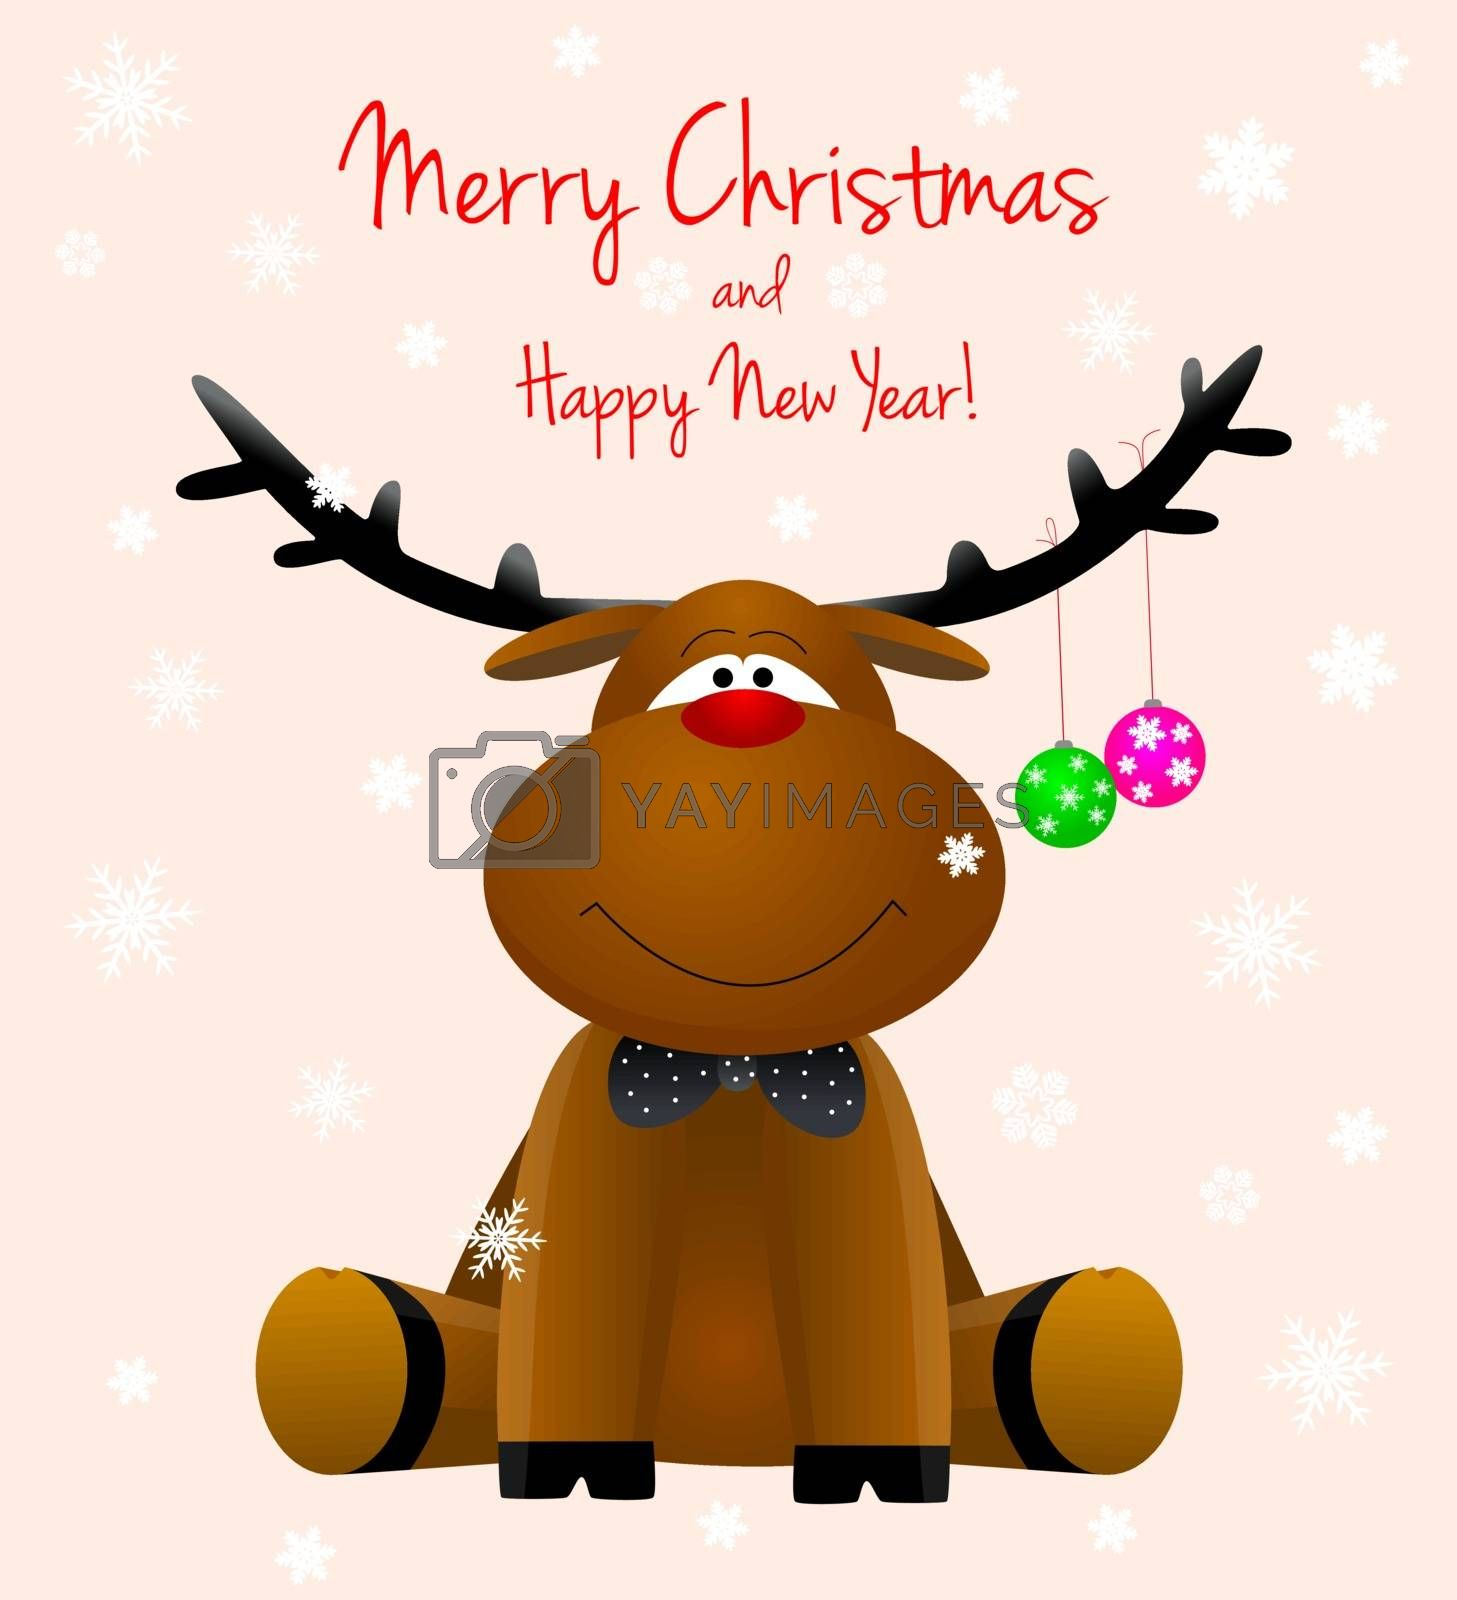 Cartoon reindeer on a greeting card with the Christmas.